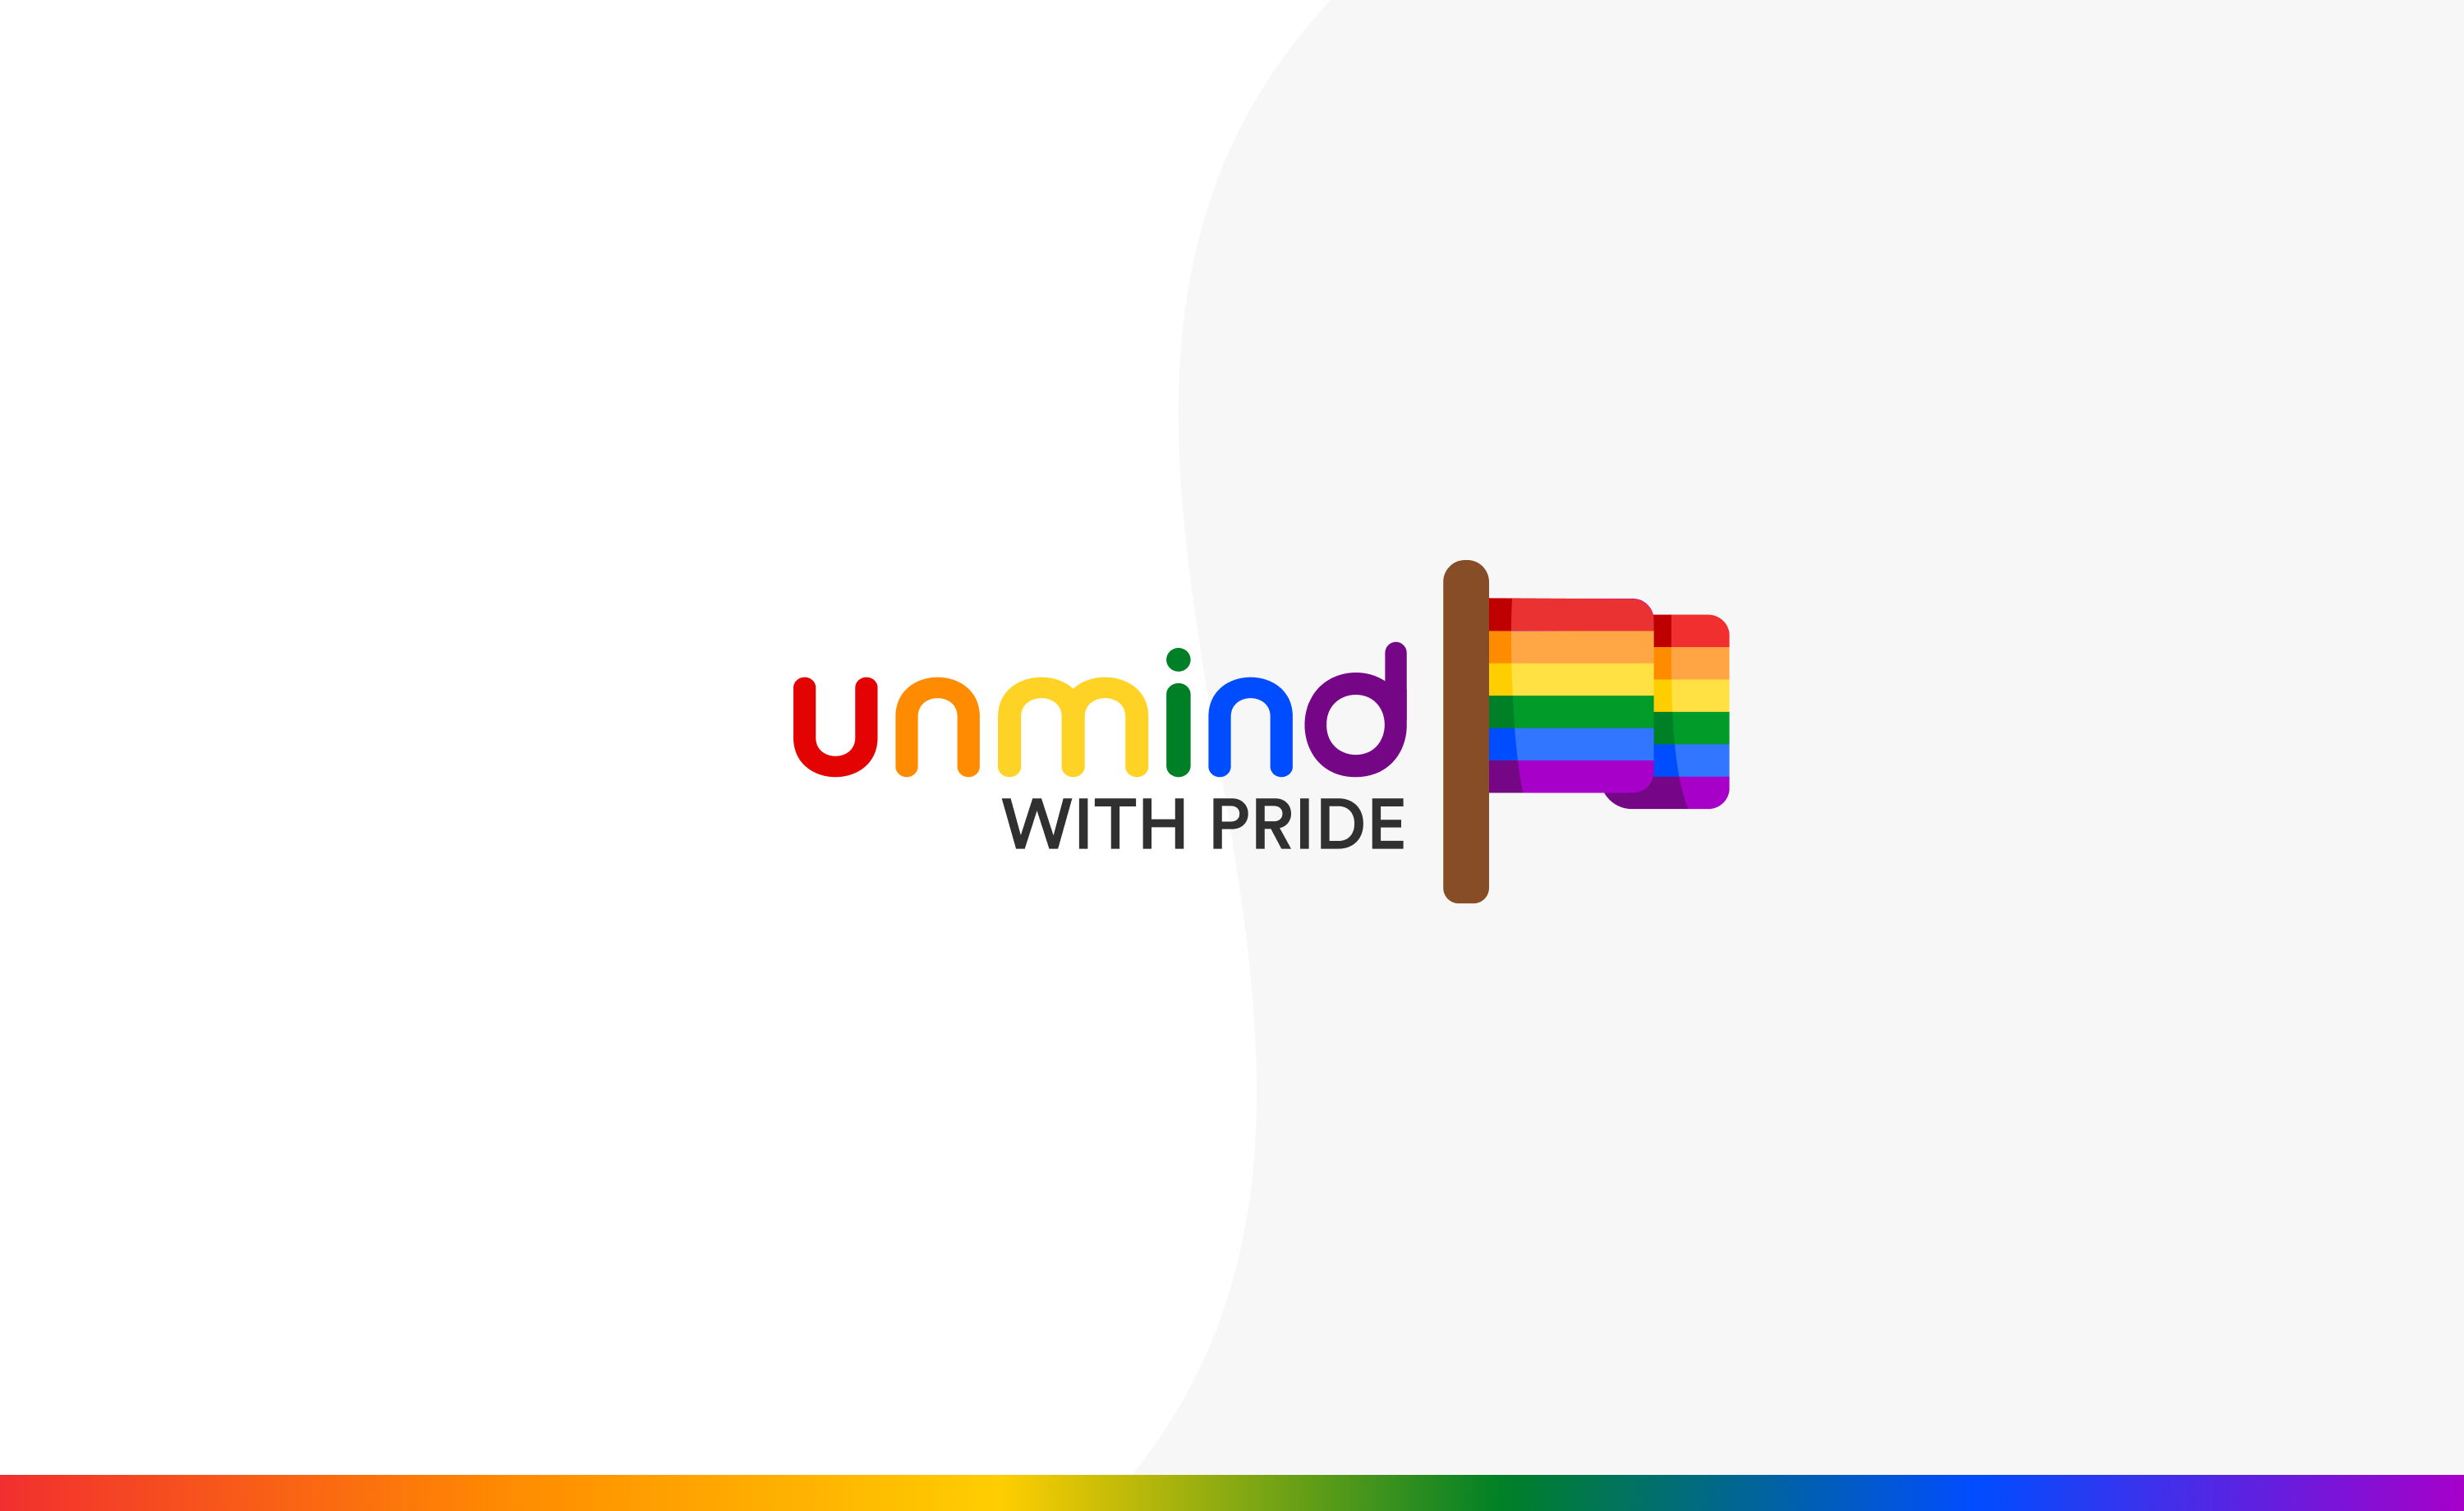 Unmind with Pride